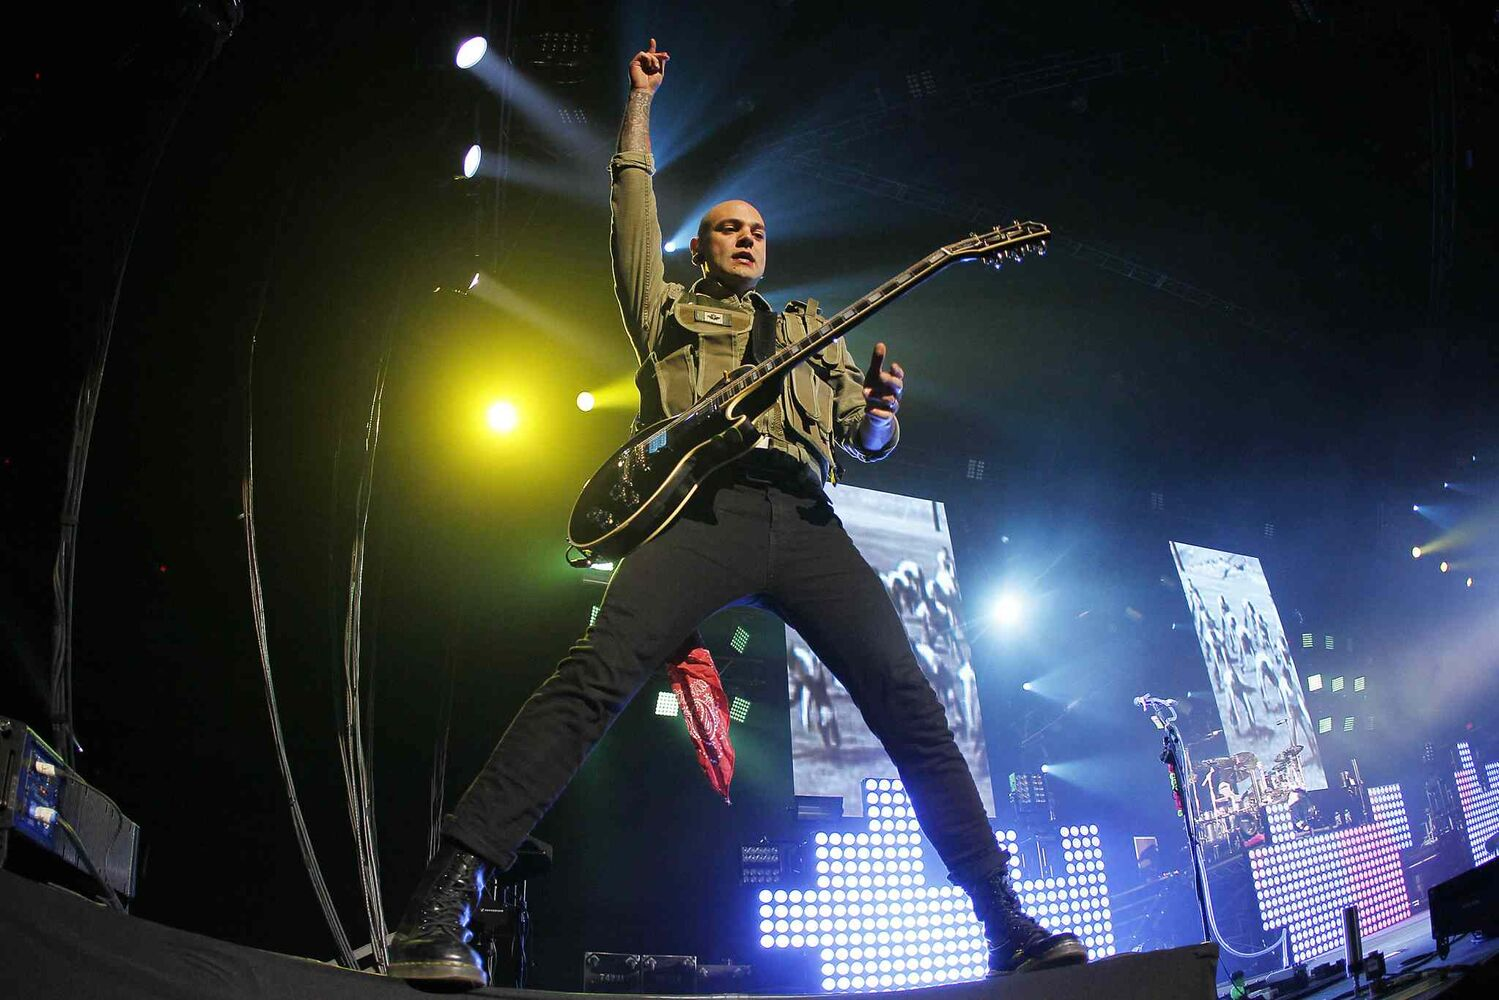 Guitarist Dave Rosin performs during Hedley's show at the MTS Centre Tuesday. (John Woods / Winnipeg Free Press)